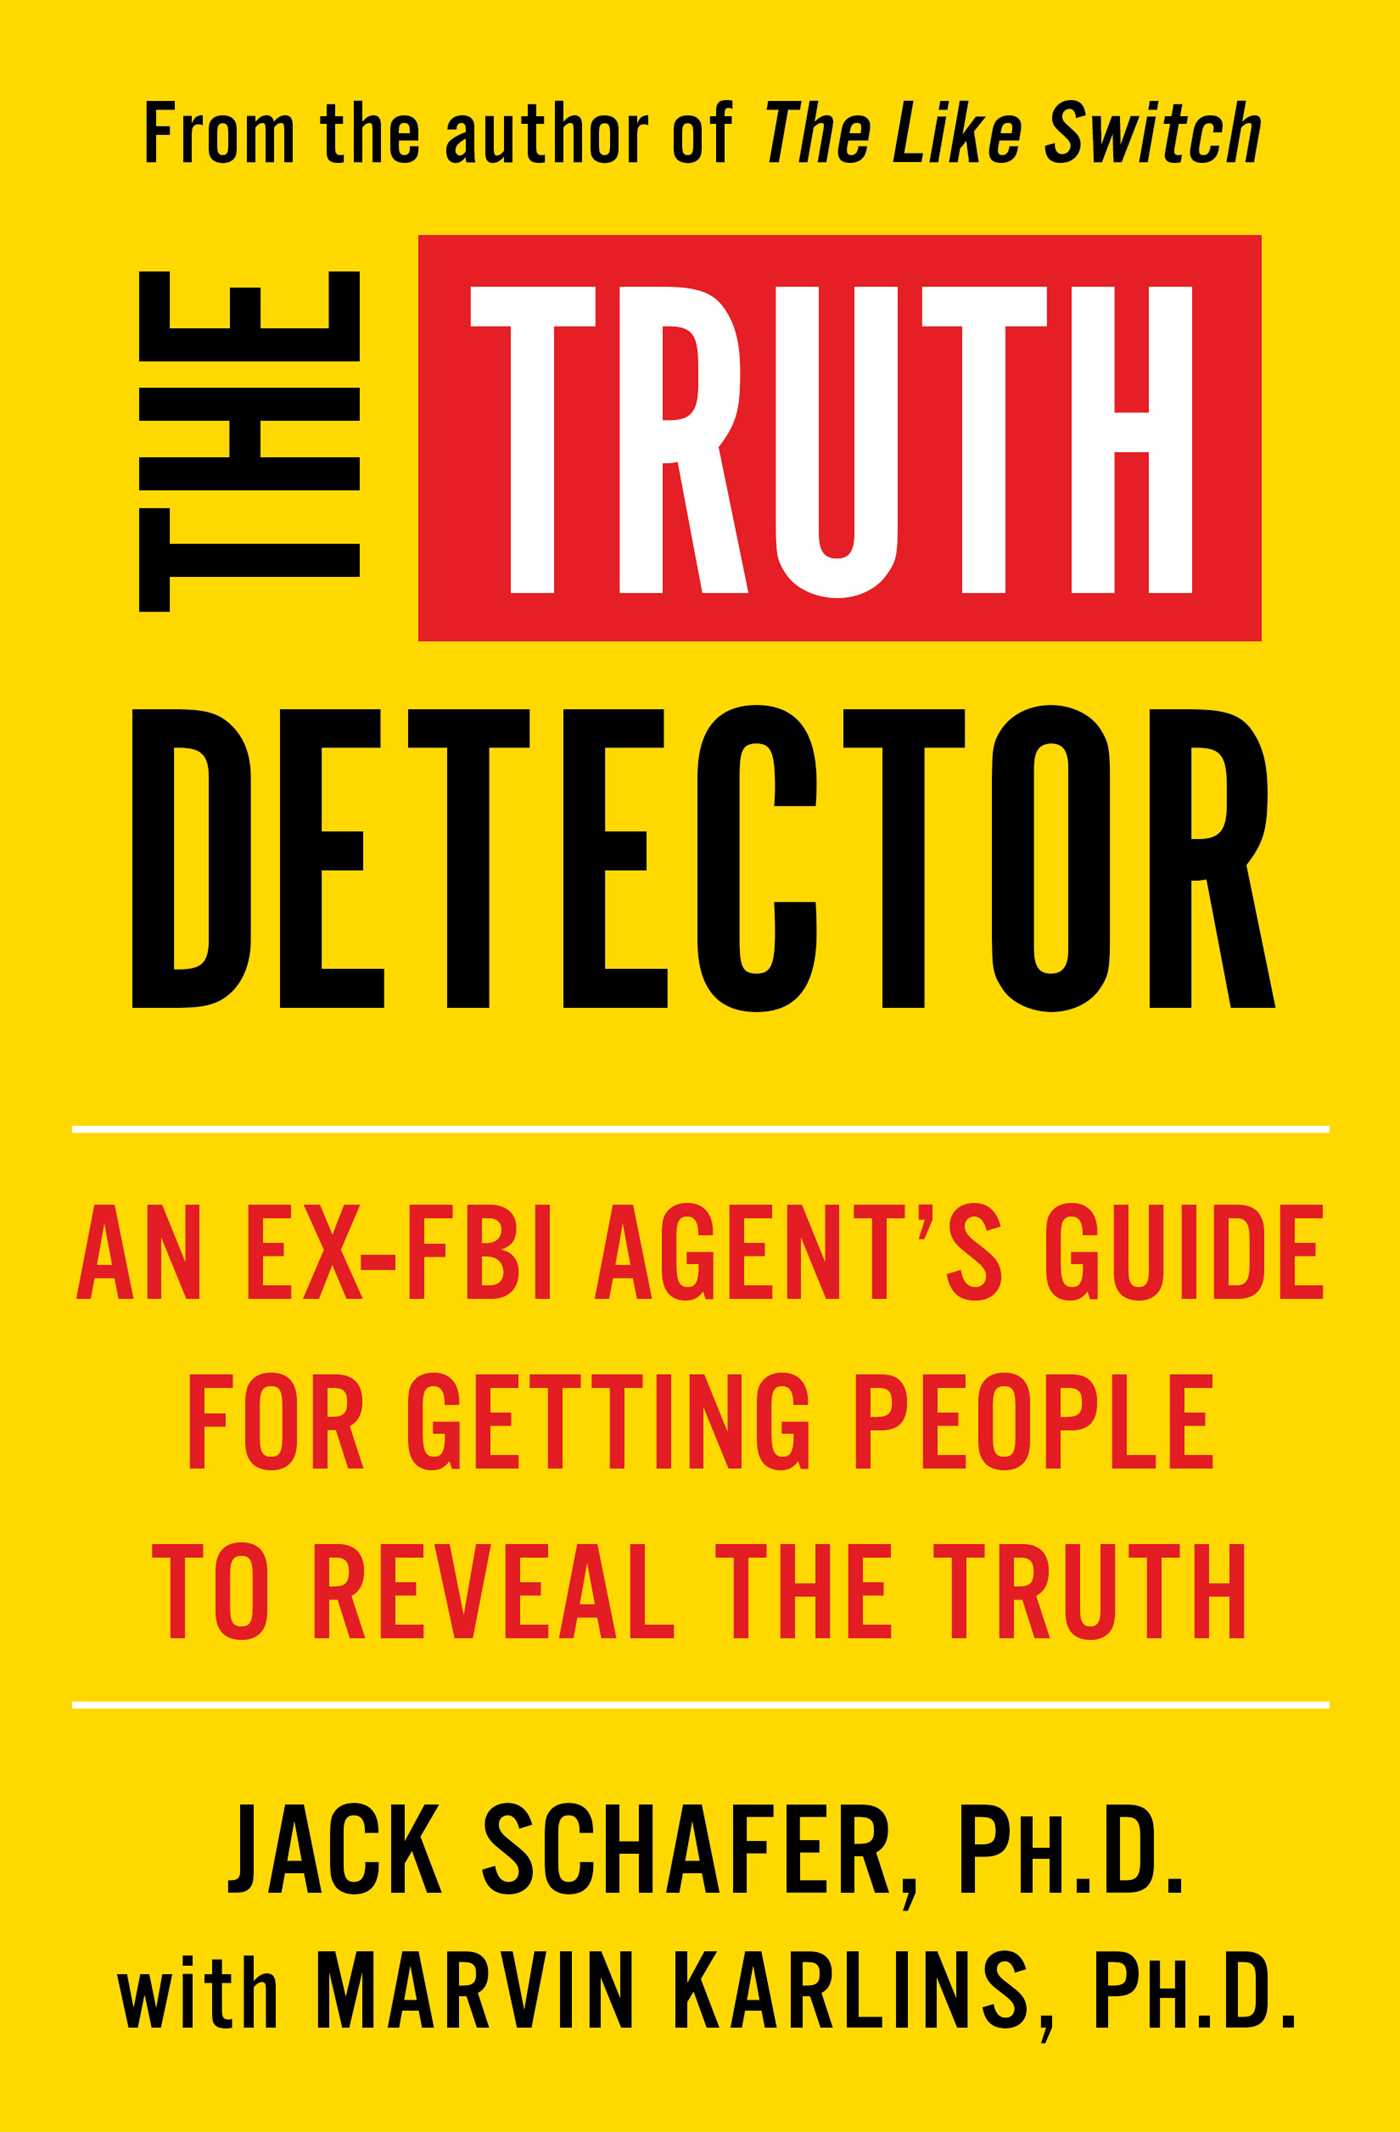 [PDF] [EPUB] The Truth Detector: An Ex-FBI Agent's Guide for Getting People to Reveal the Truth Download by Jack Schafer